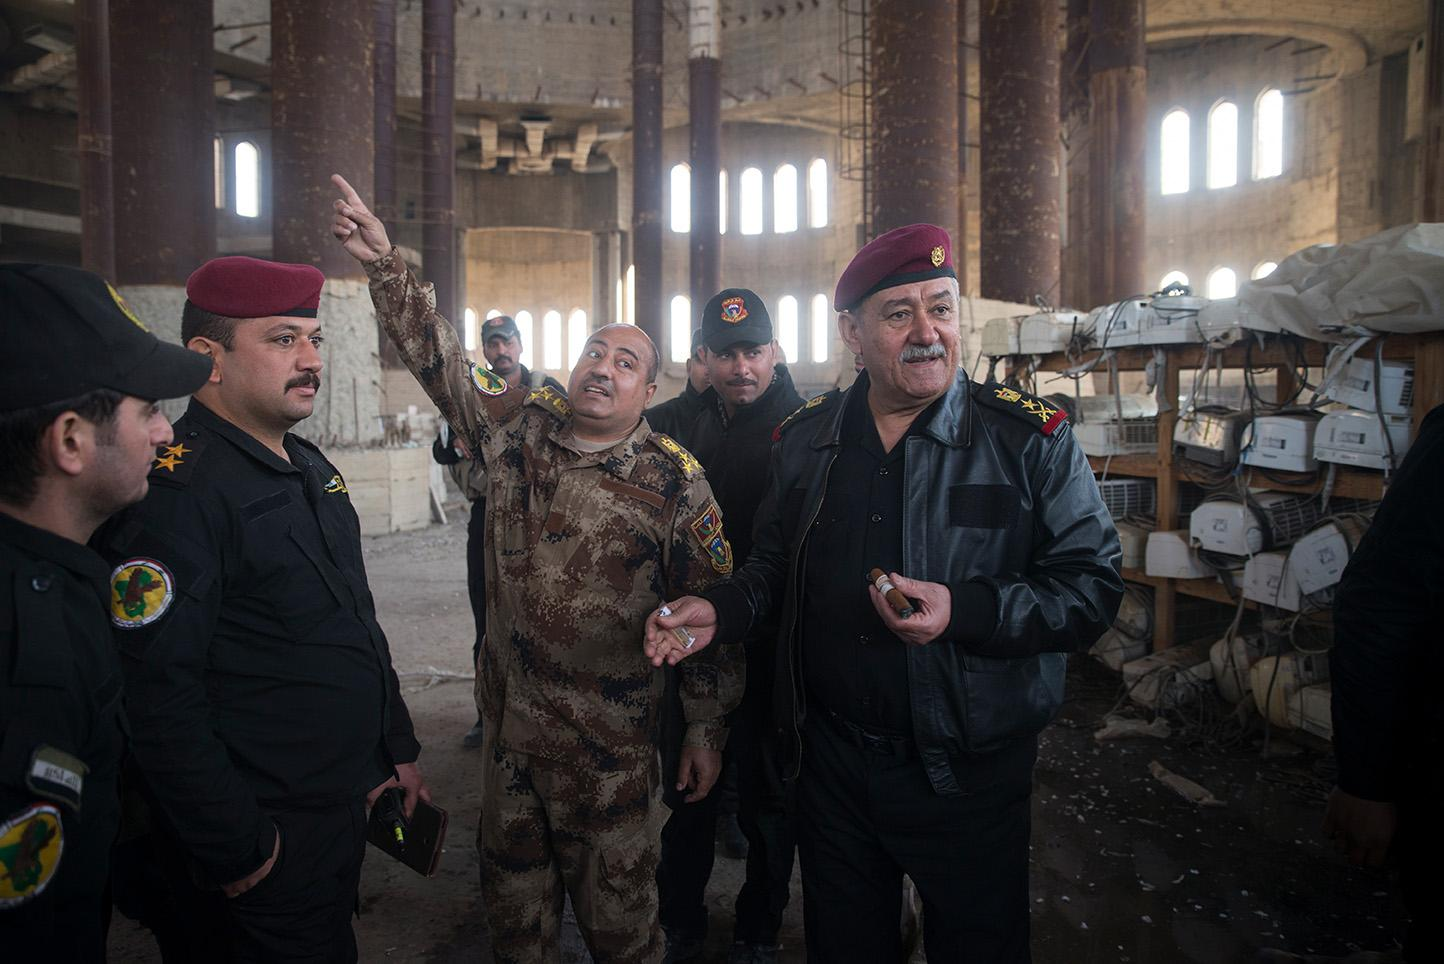 Mosul, Iraq. A member of Iraq Special Forces show Abdul-Ghani al-Assadi commander of Iraq's anti-terrorism unit the recently liberated Great Mosque of Mosul, a Sunni mosque originally built by Saddam Hussein, though construction was never completed. The mosque was used as a training school for Islamic State militants, a storehouse for stolen items and one area was turned into a prison for Mosul residents who did not obey ISIS rules. It also served as a stage for filmed beheadings by the Islamic militants. The Great Mosque was liberated on January 18th, 2017.